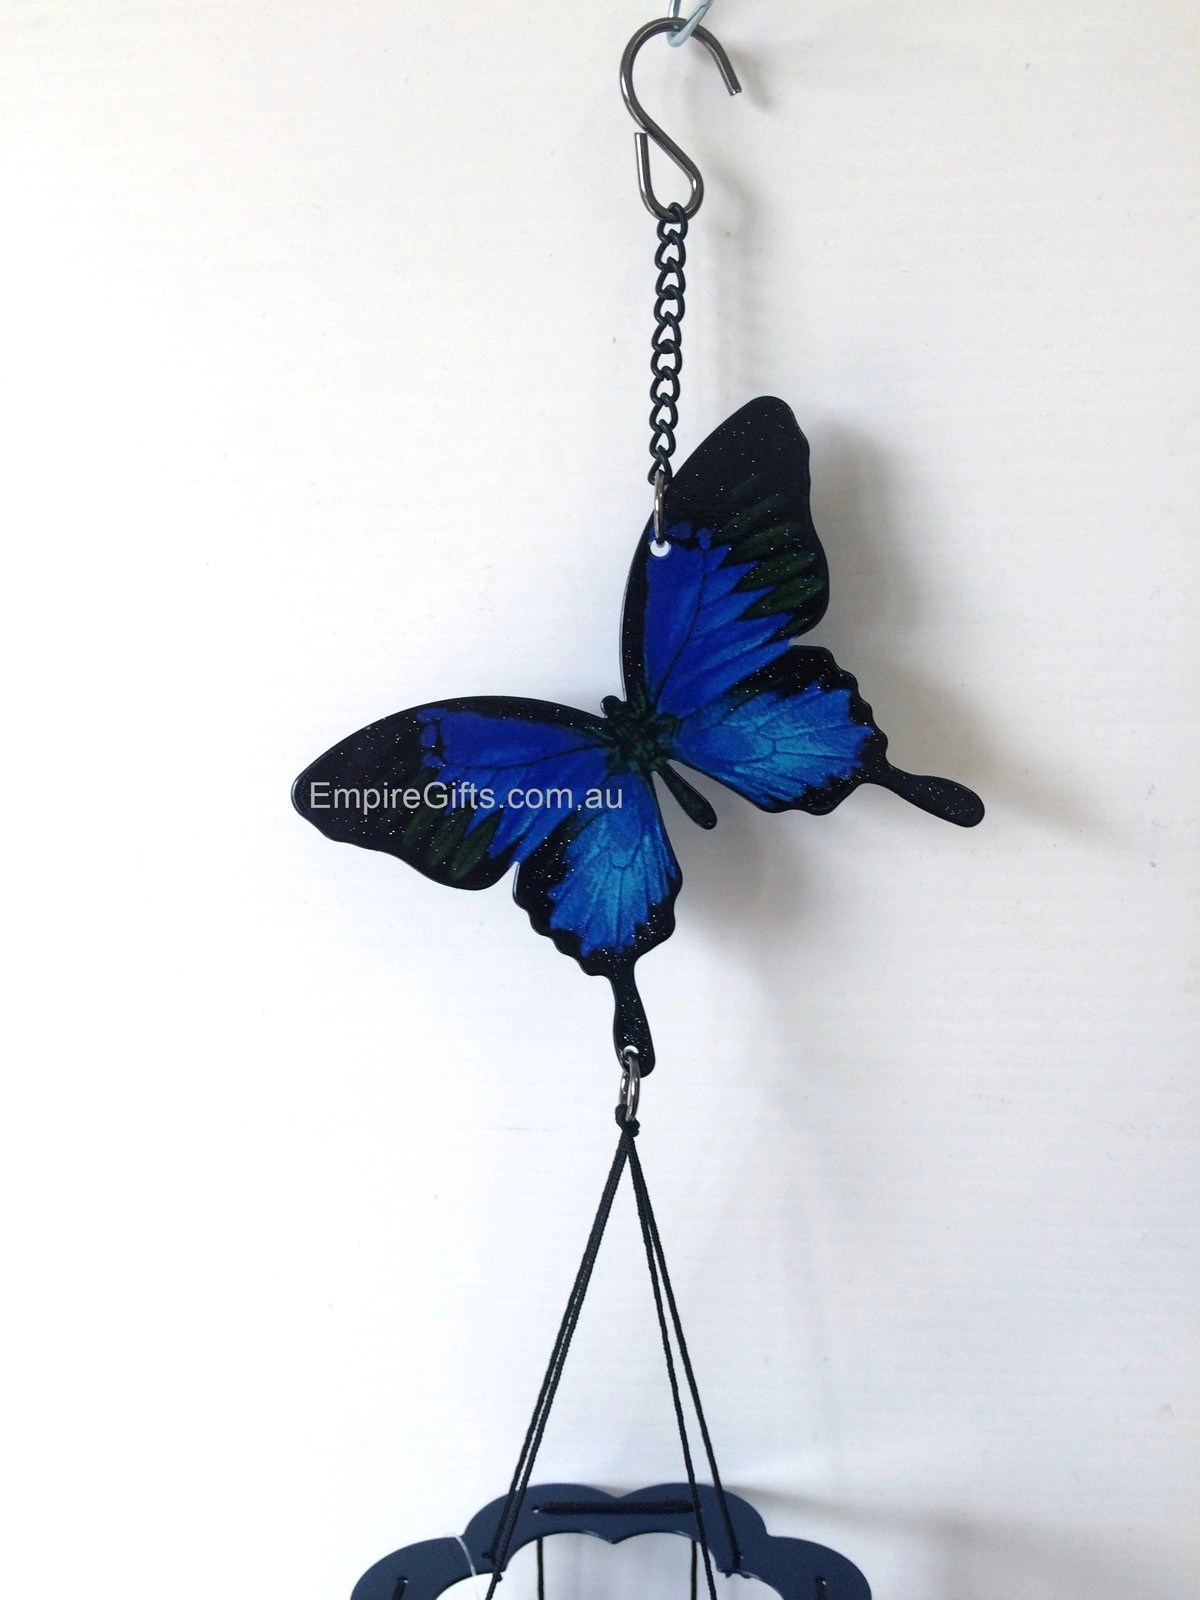 1 x Butterfly Blue Ulysses Metal Wind Chime 5pc mobile  Empire Gifts